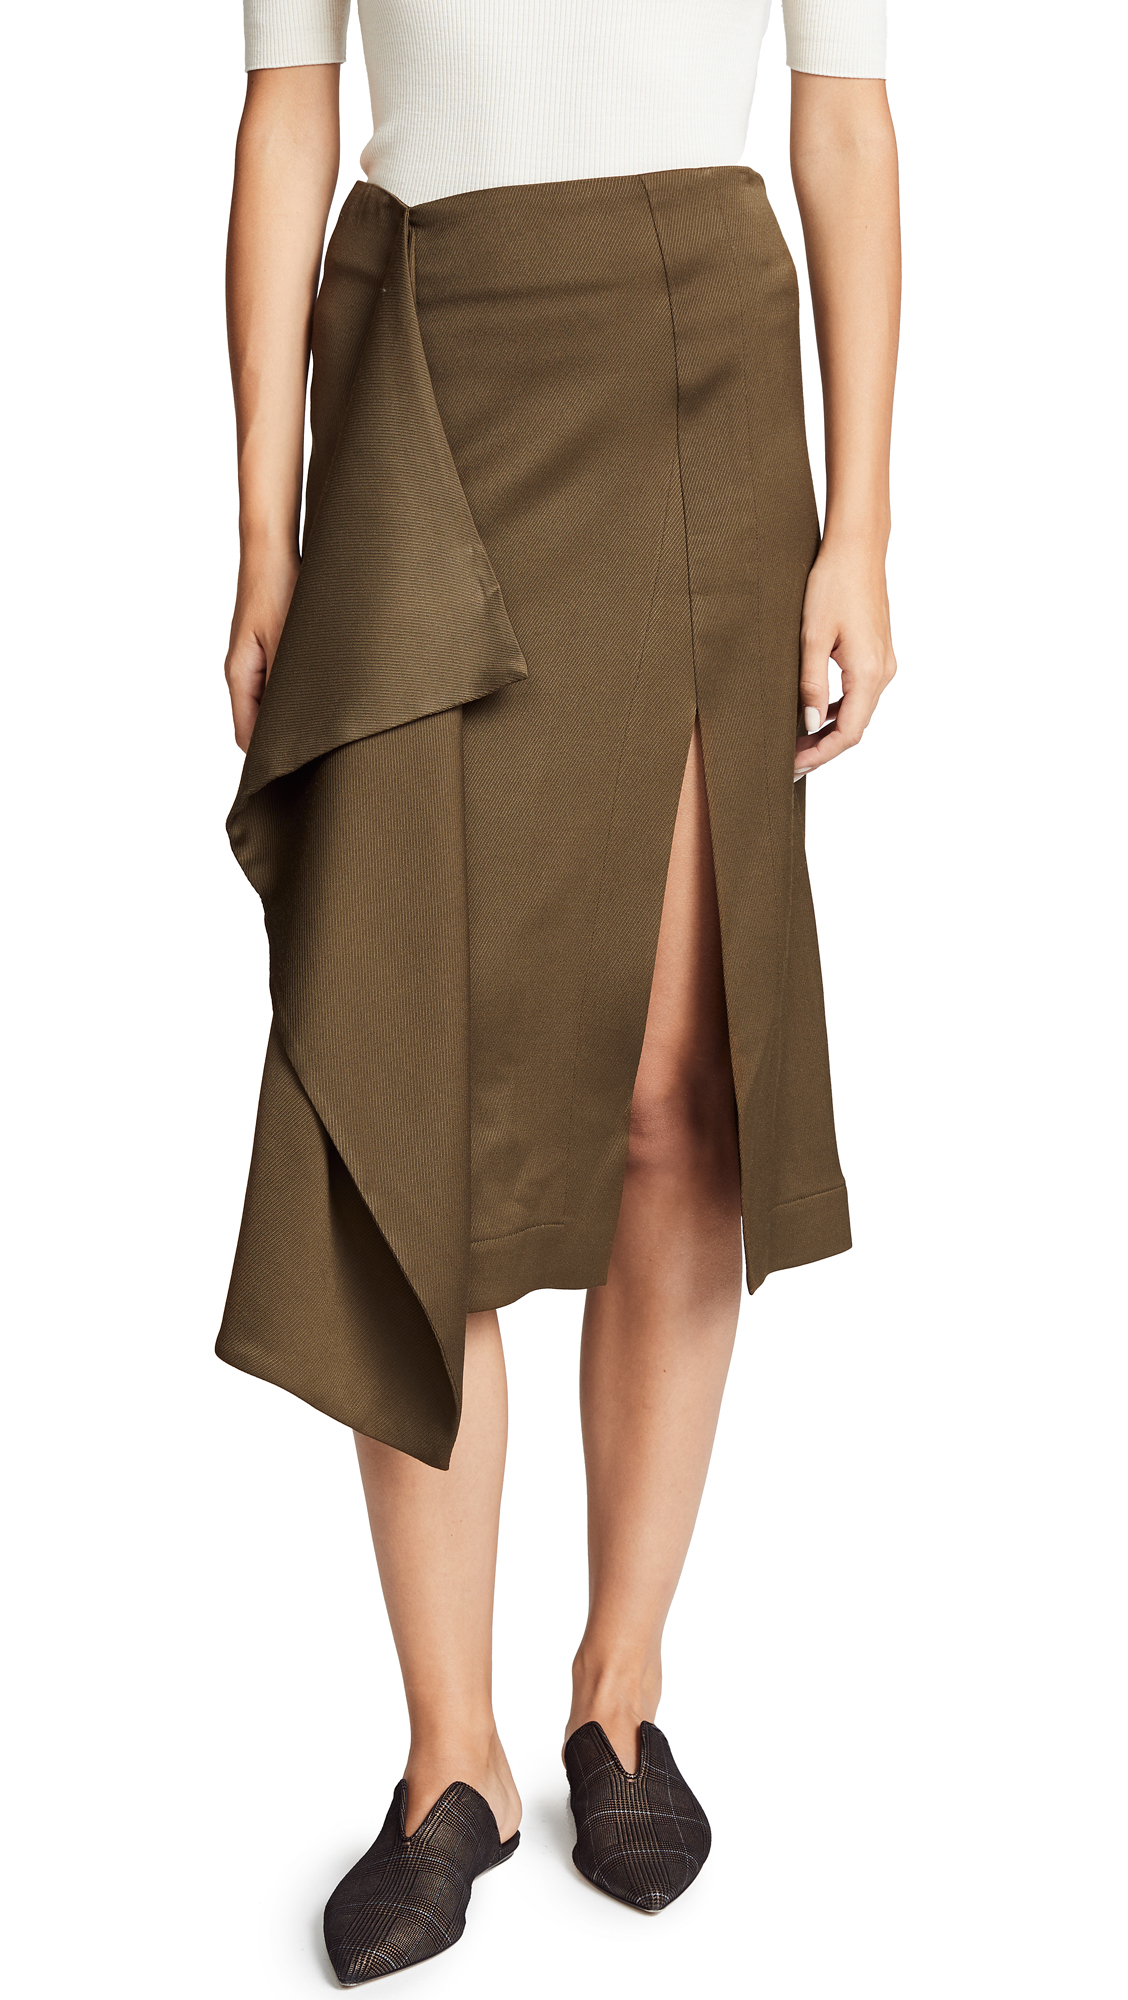 Cedric Charlier Asymmetrical Skirt In Green